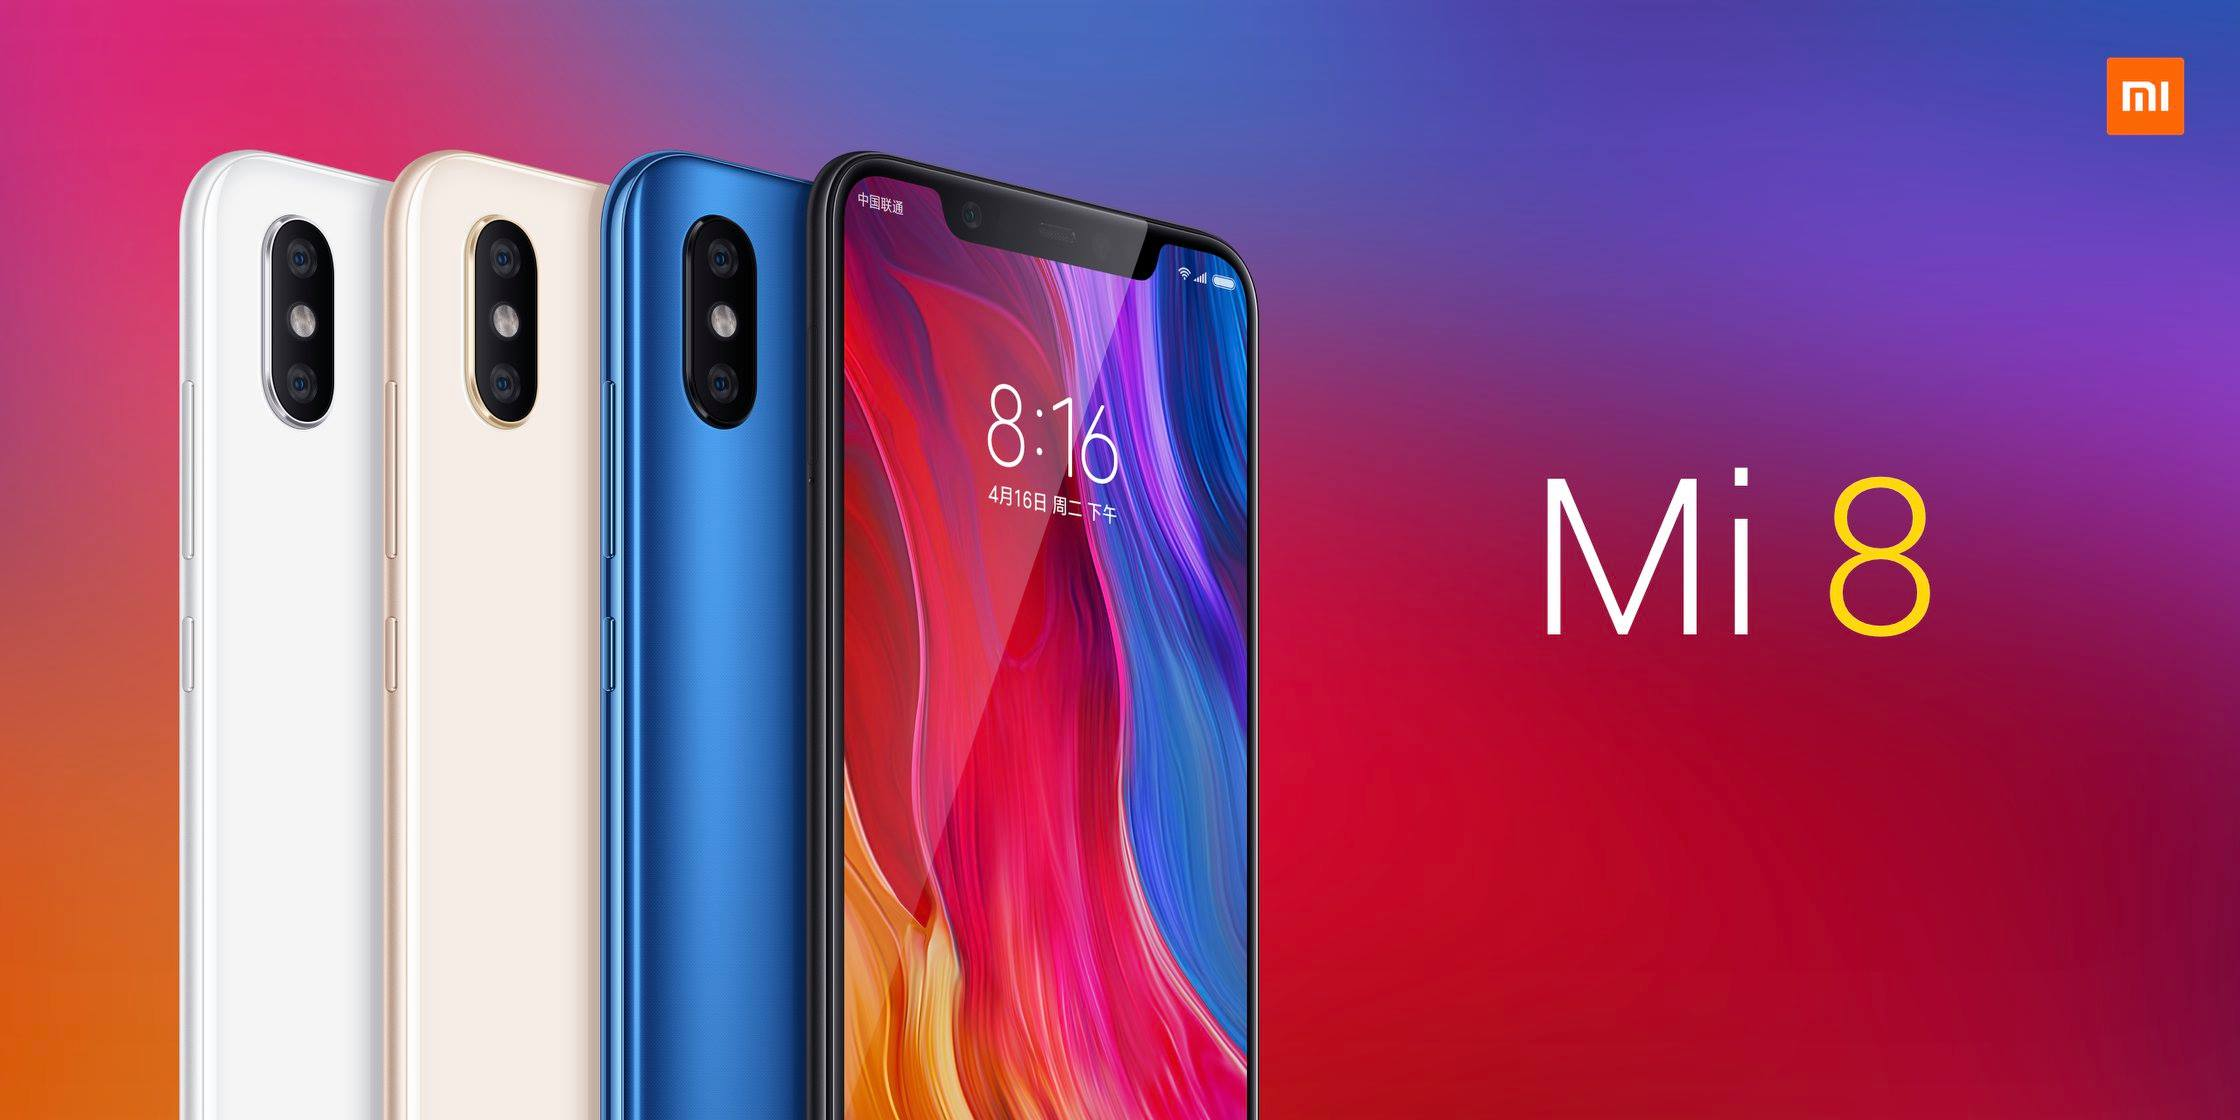 Xiaomi unveils new Mi 8 series with MIUI 10 and Mi Band 3